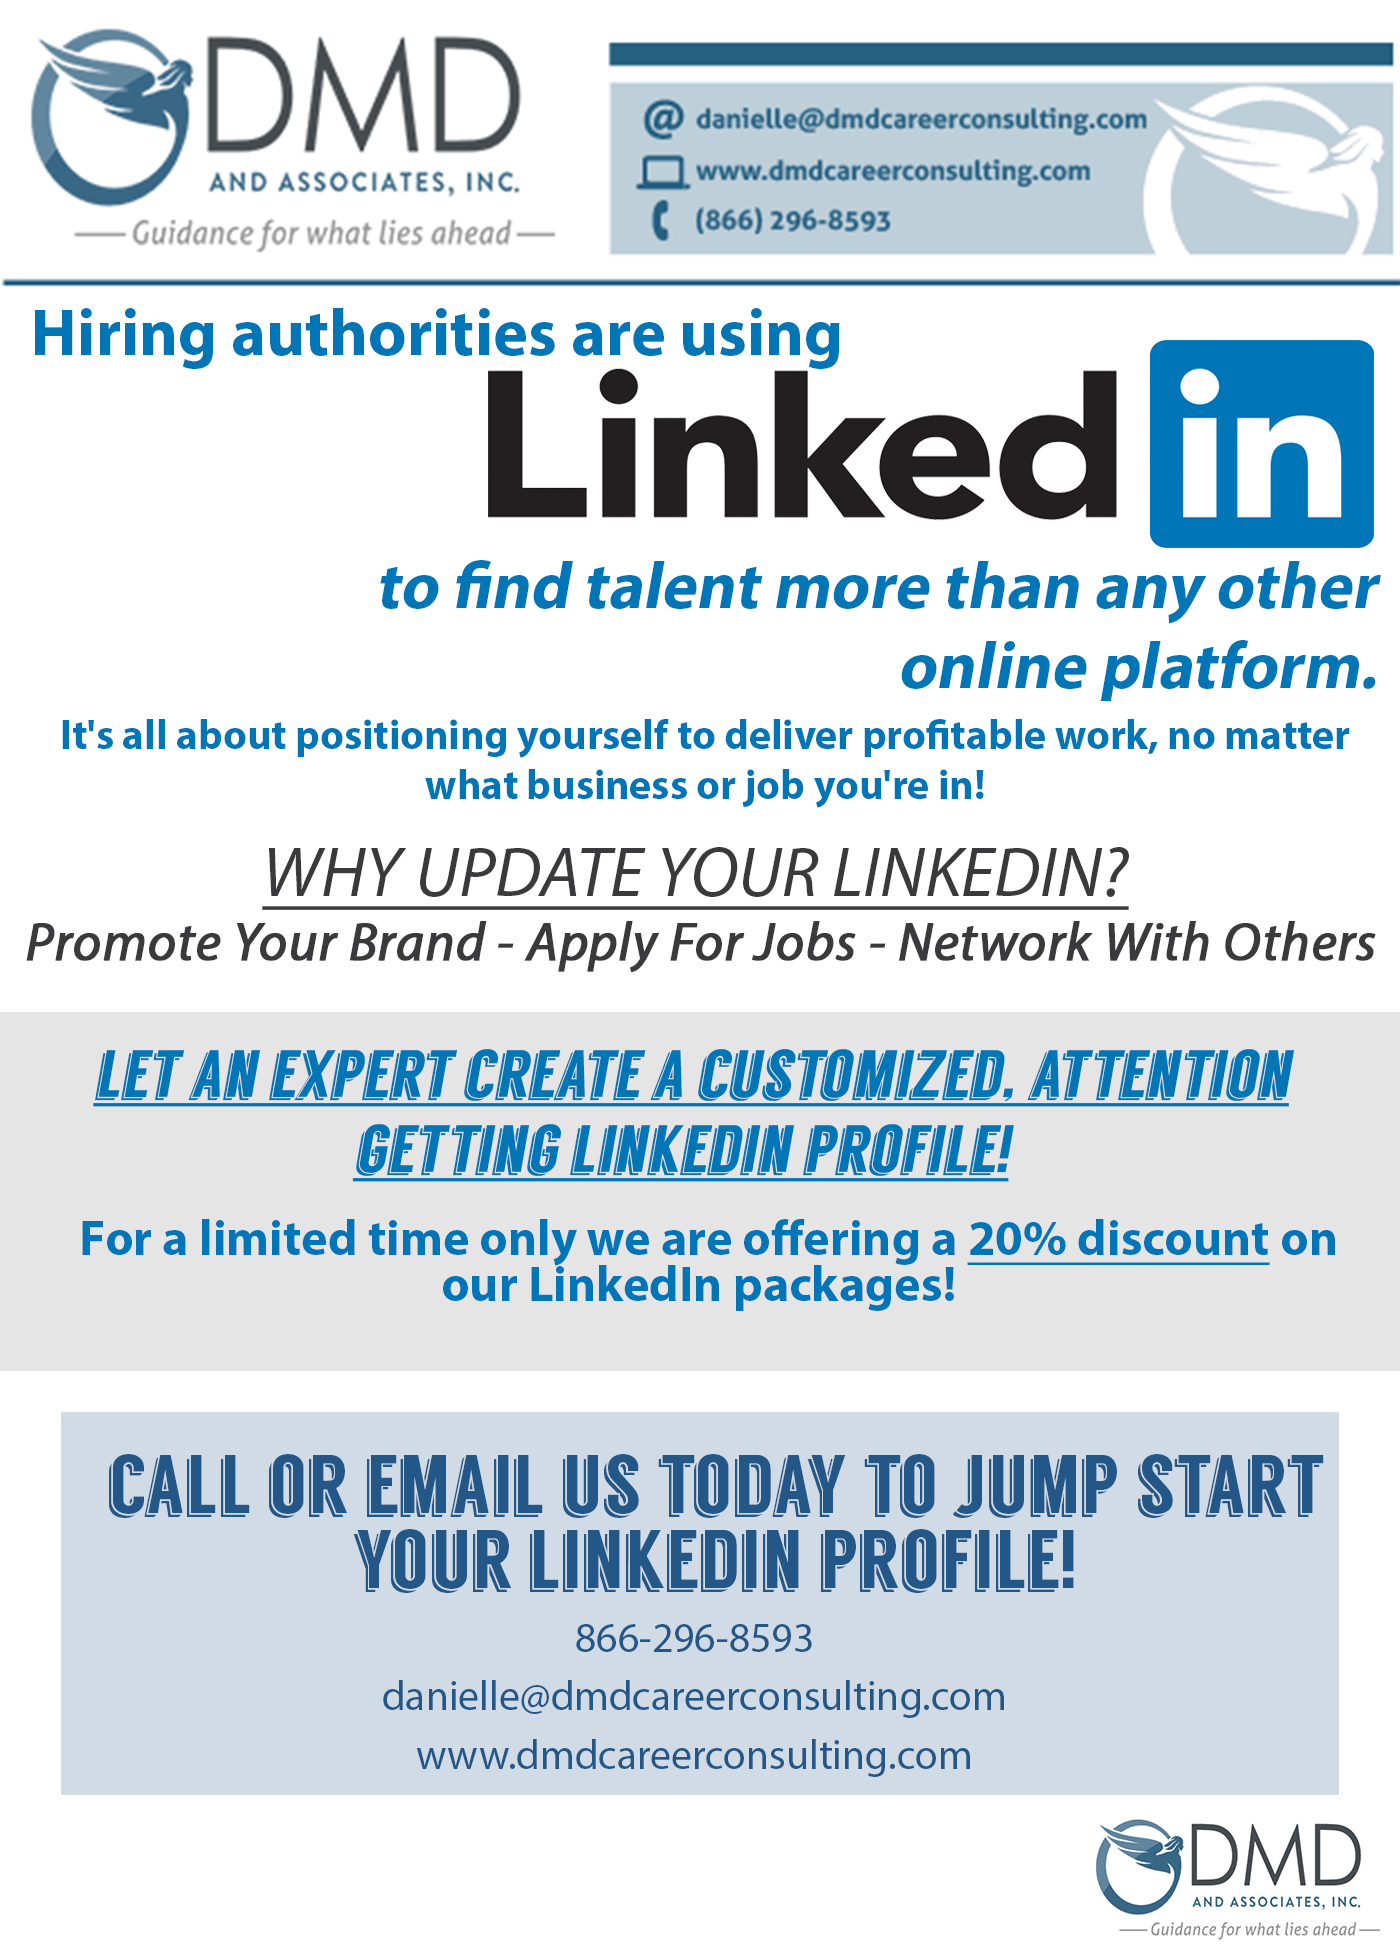 Linked In, Career coaching, hiring, services, resume, Blog. - DMD ...